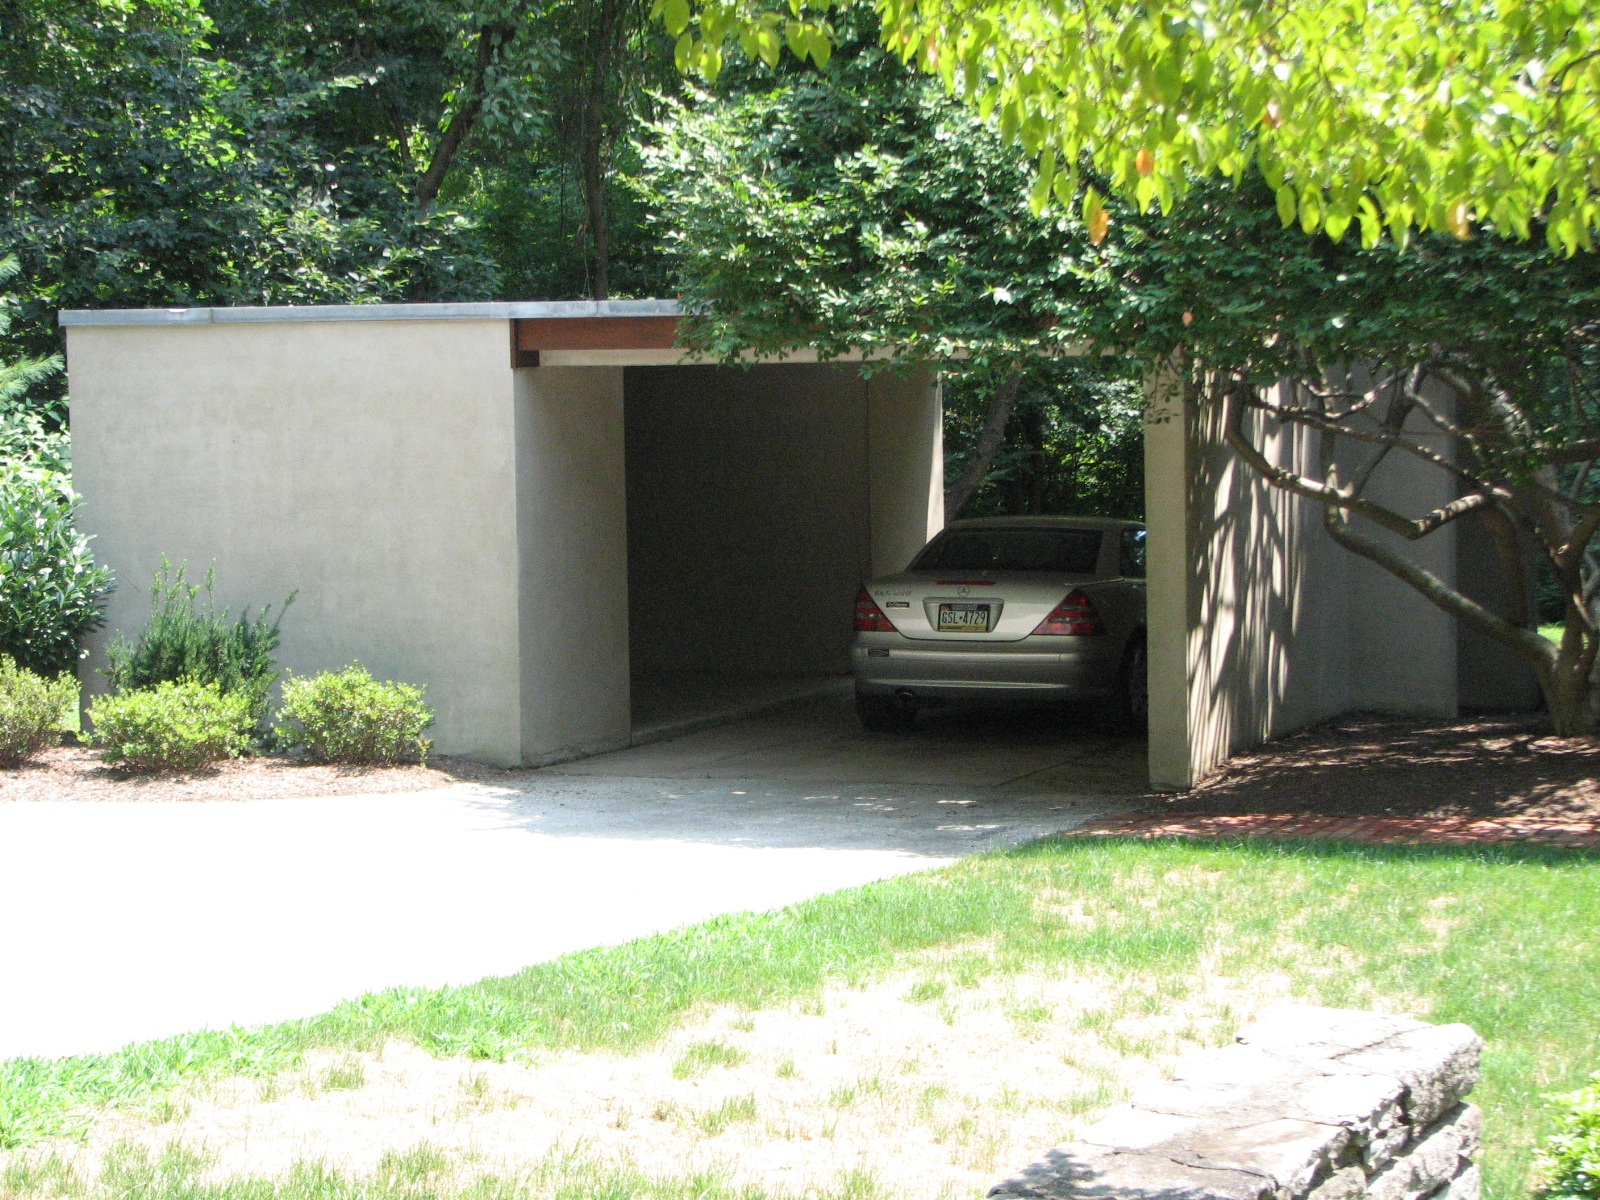 Even the carport has a Zen tranquility.